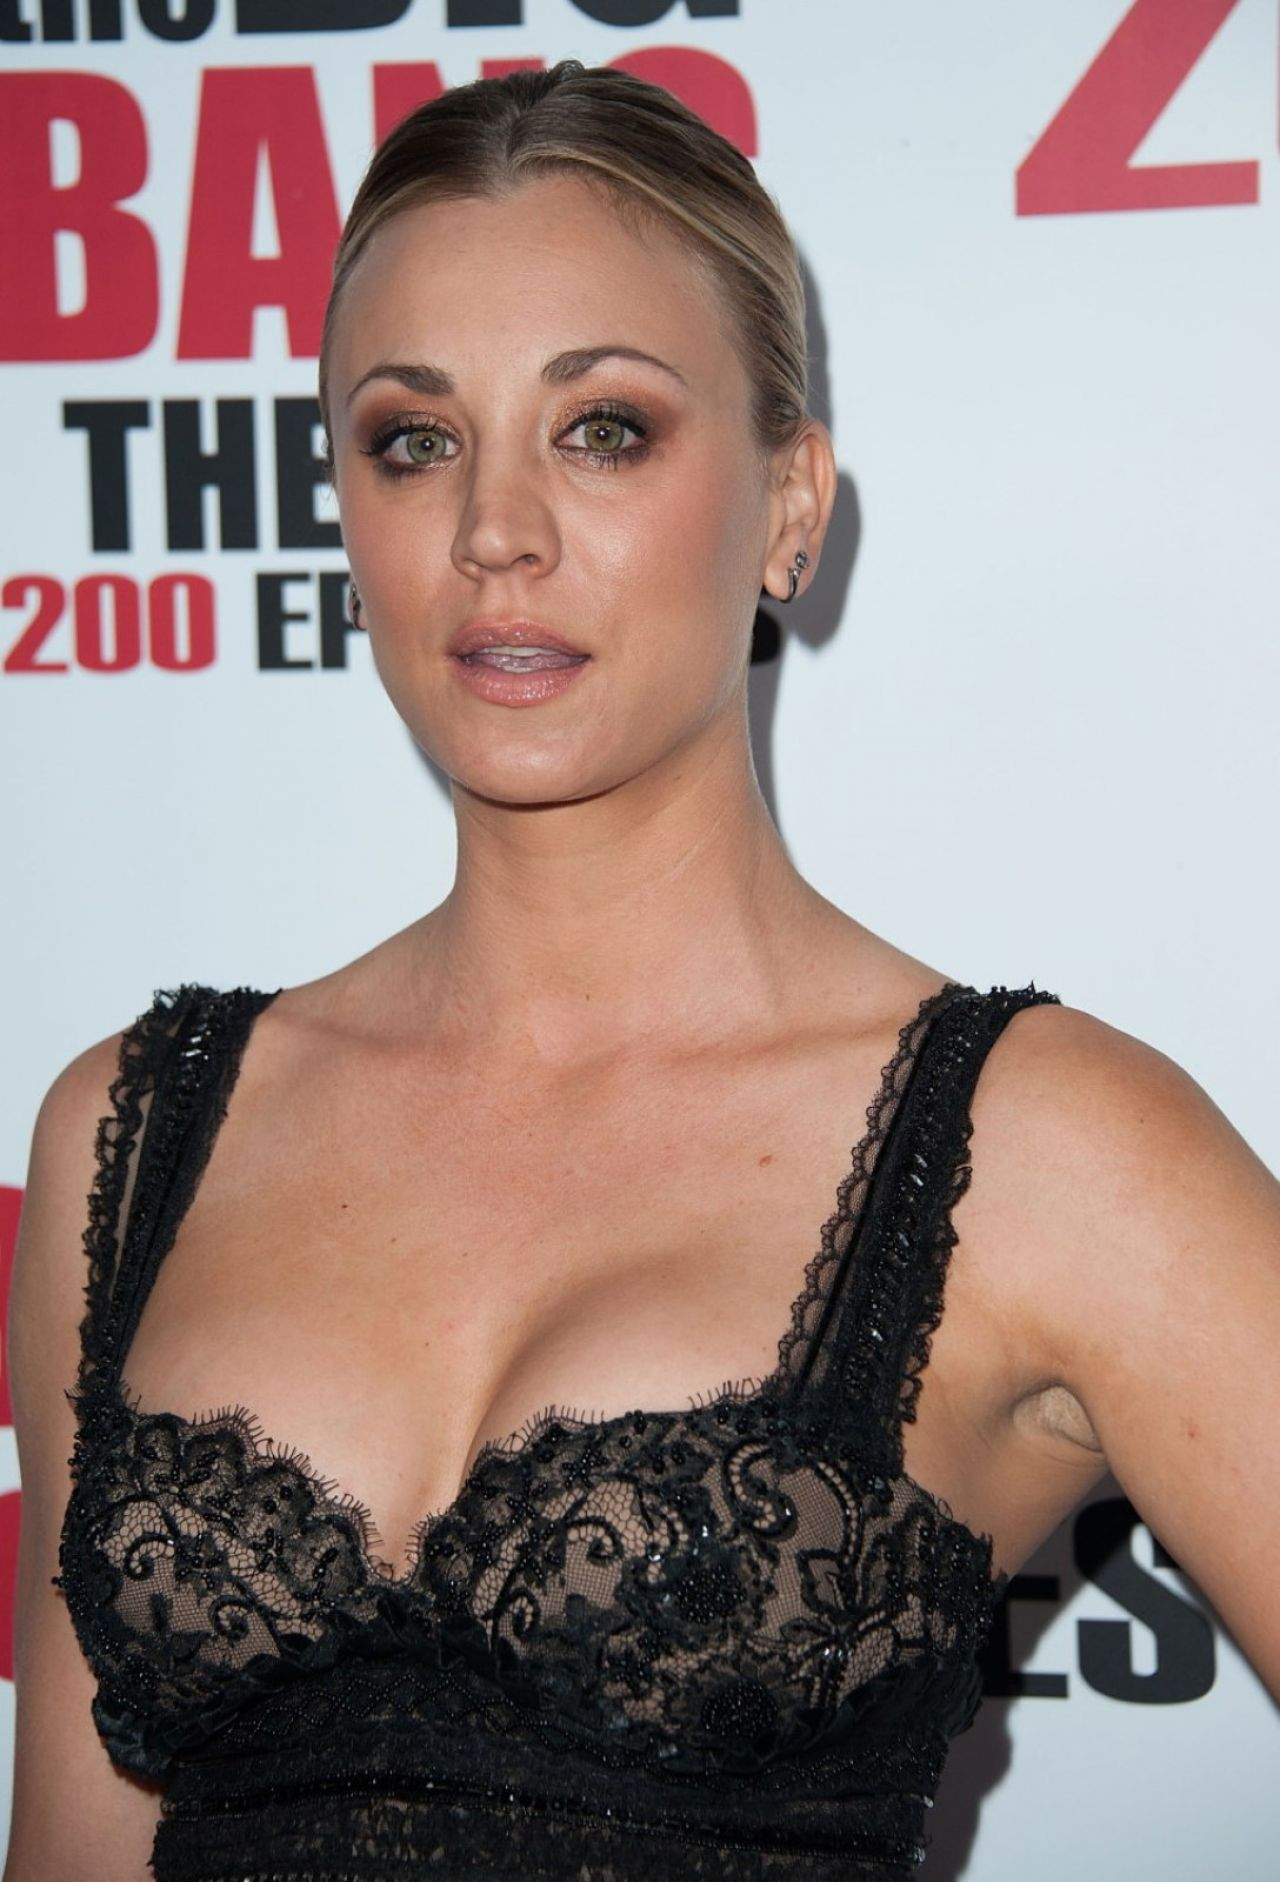 kaley-cuoco-cbs-s-the-big-bang-theory-celebrates-200th-episode-in-los-angeles-2